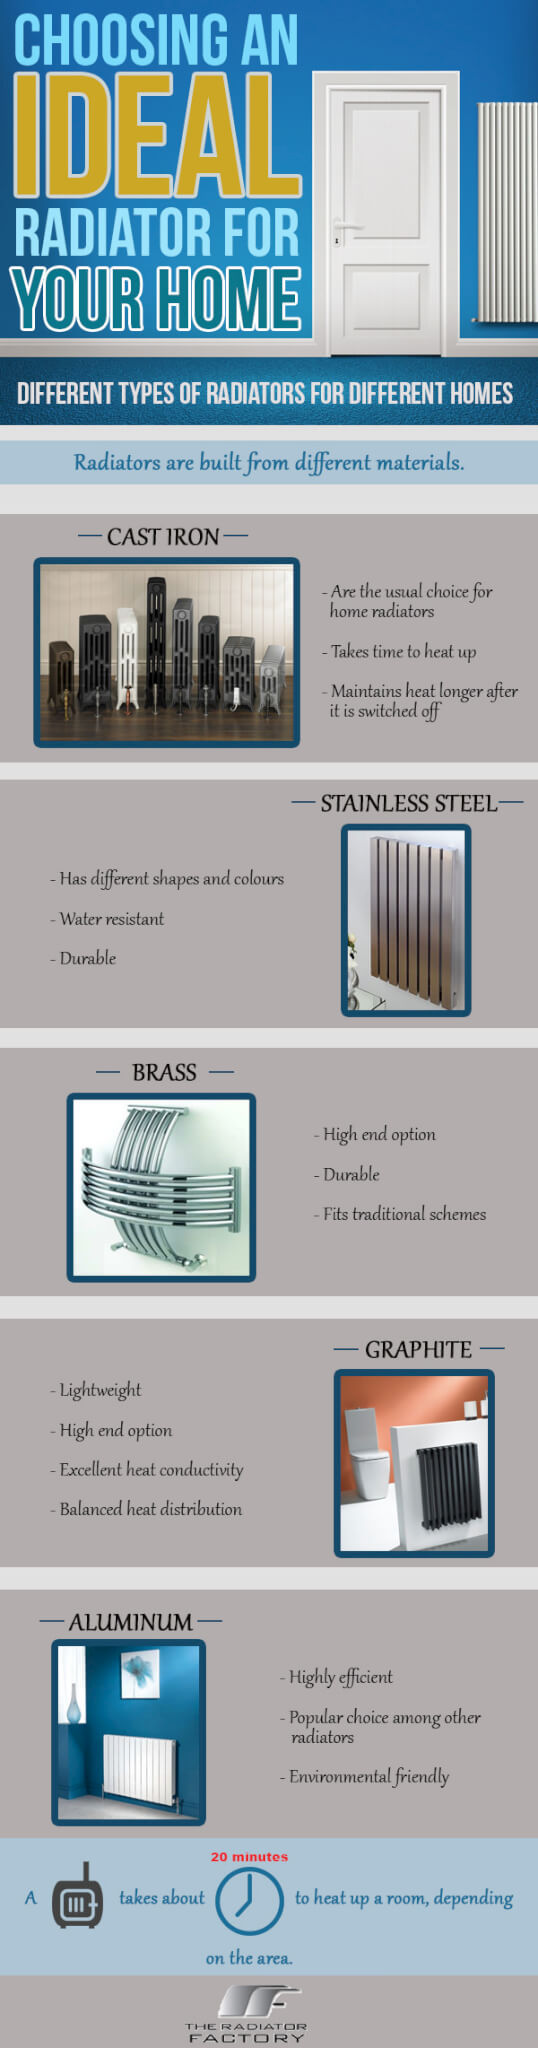 CHOOSING AN IDEAL RADIATOR FOR YOUR HOME